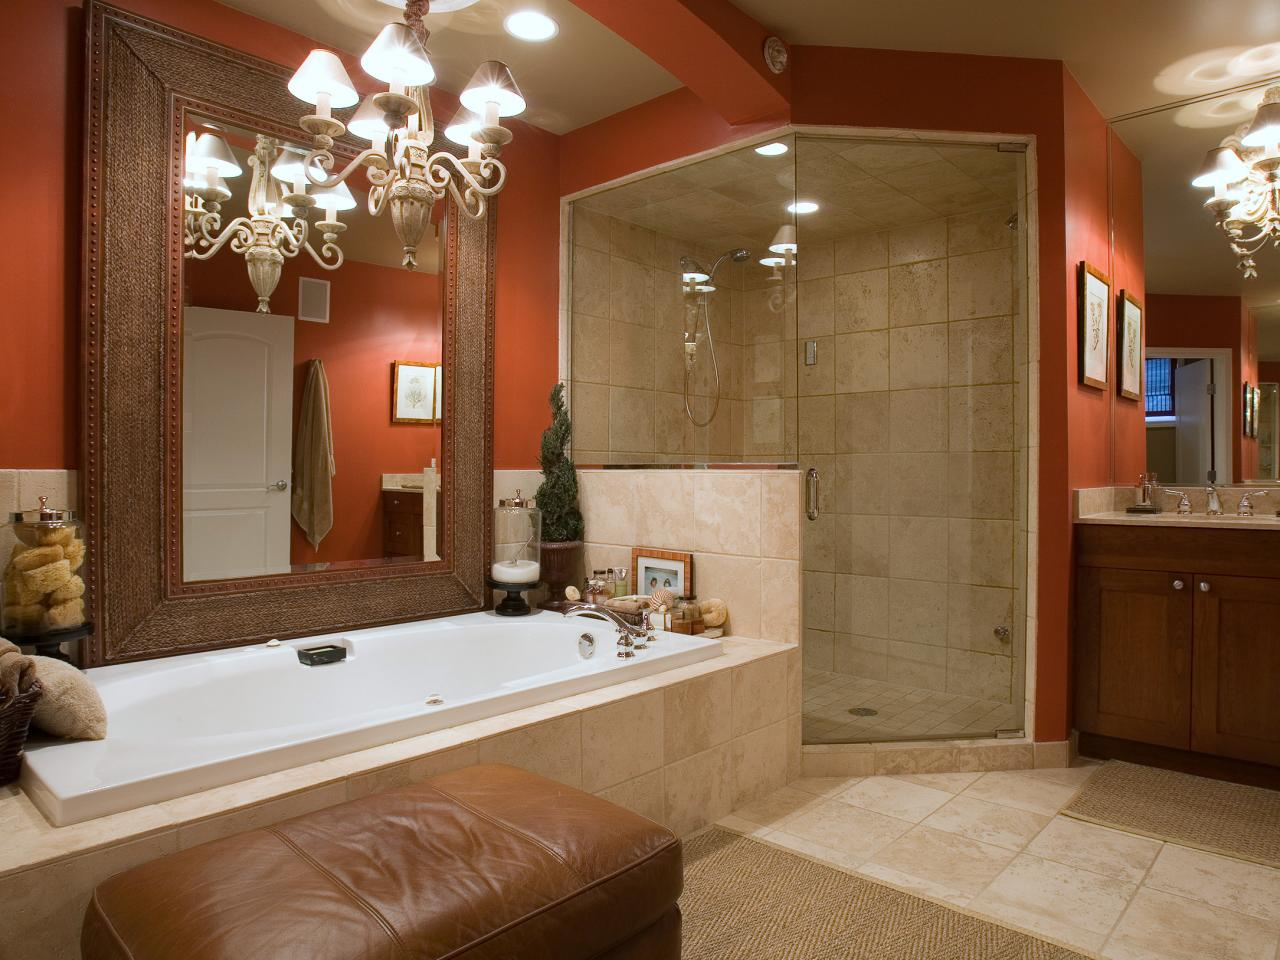 bathroom color schemes some helpful ideas in choosing the bathroom colour schemes 31407